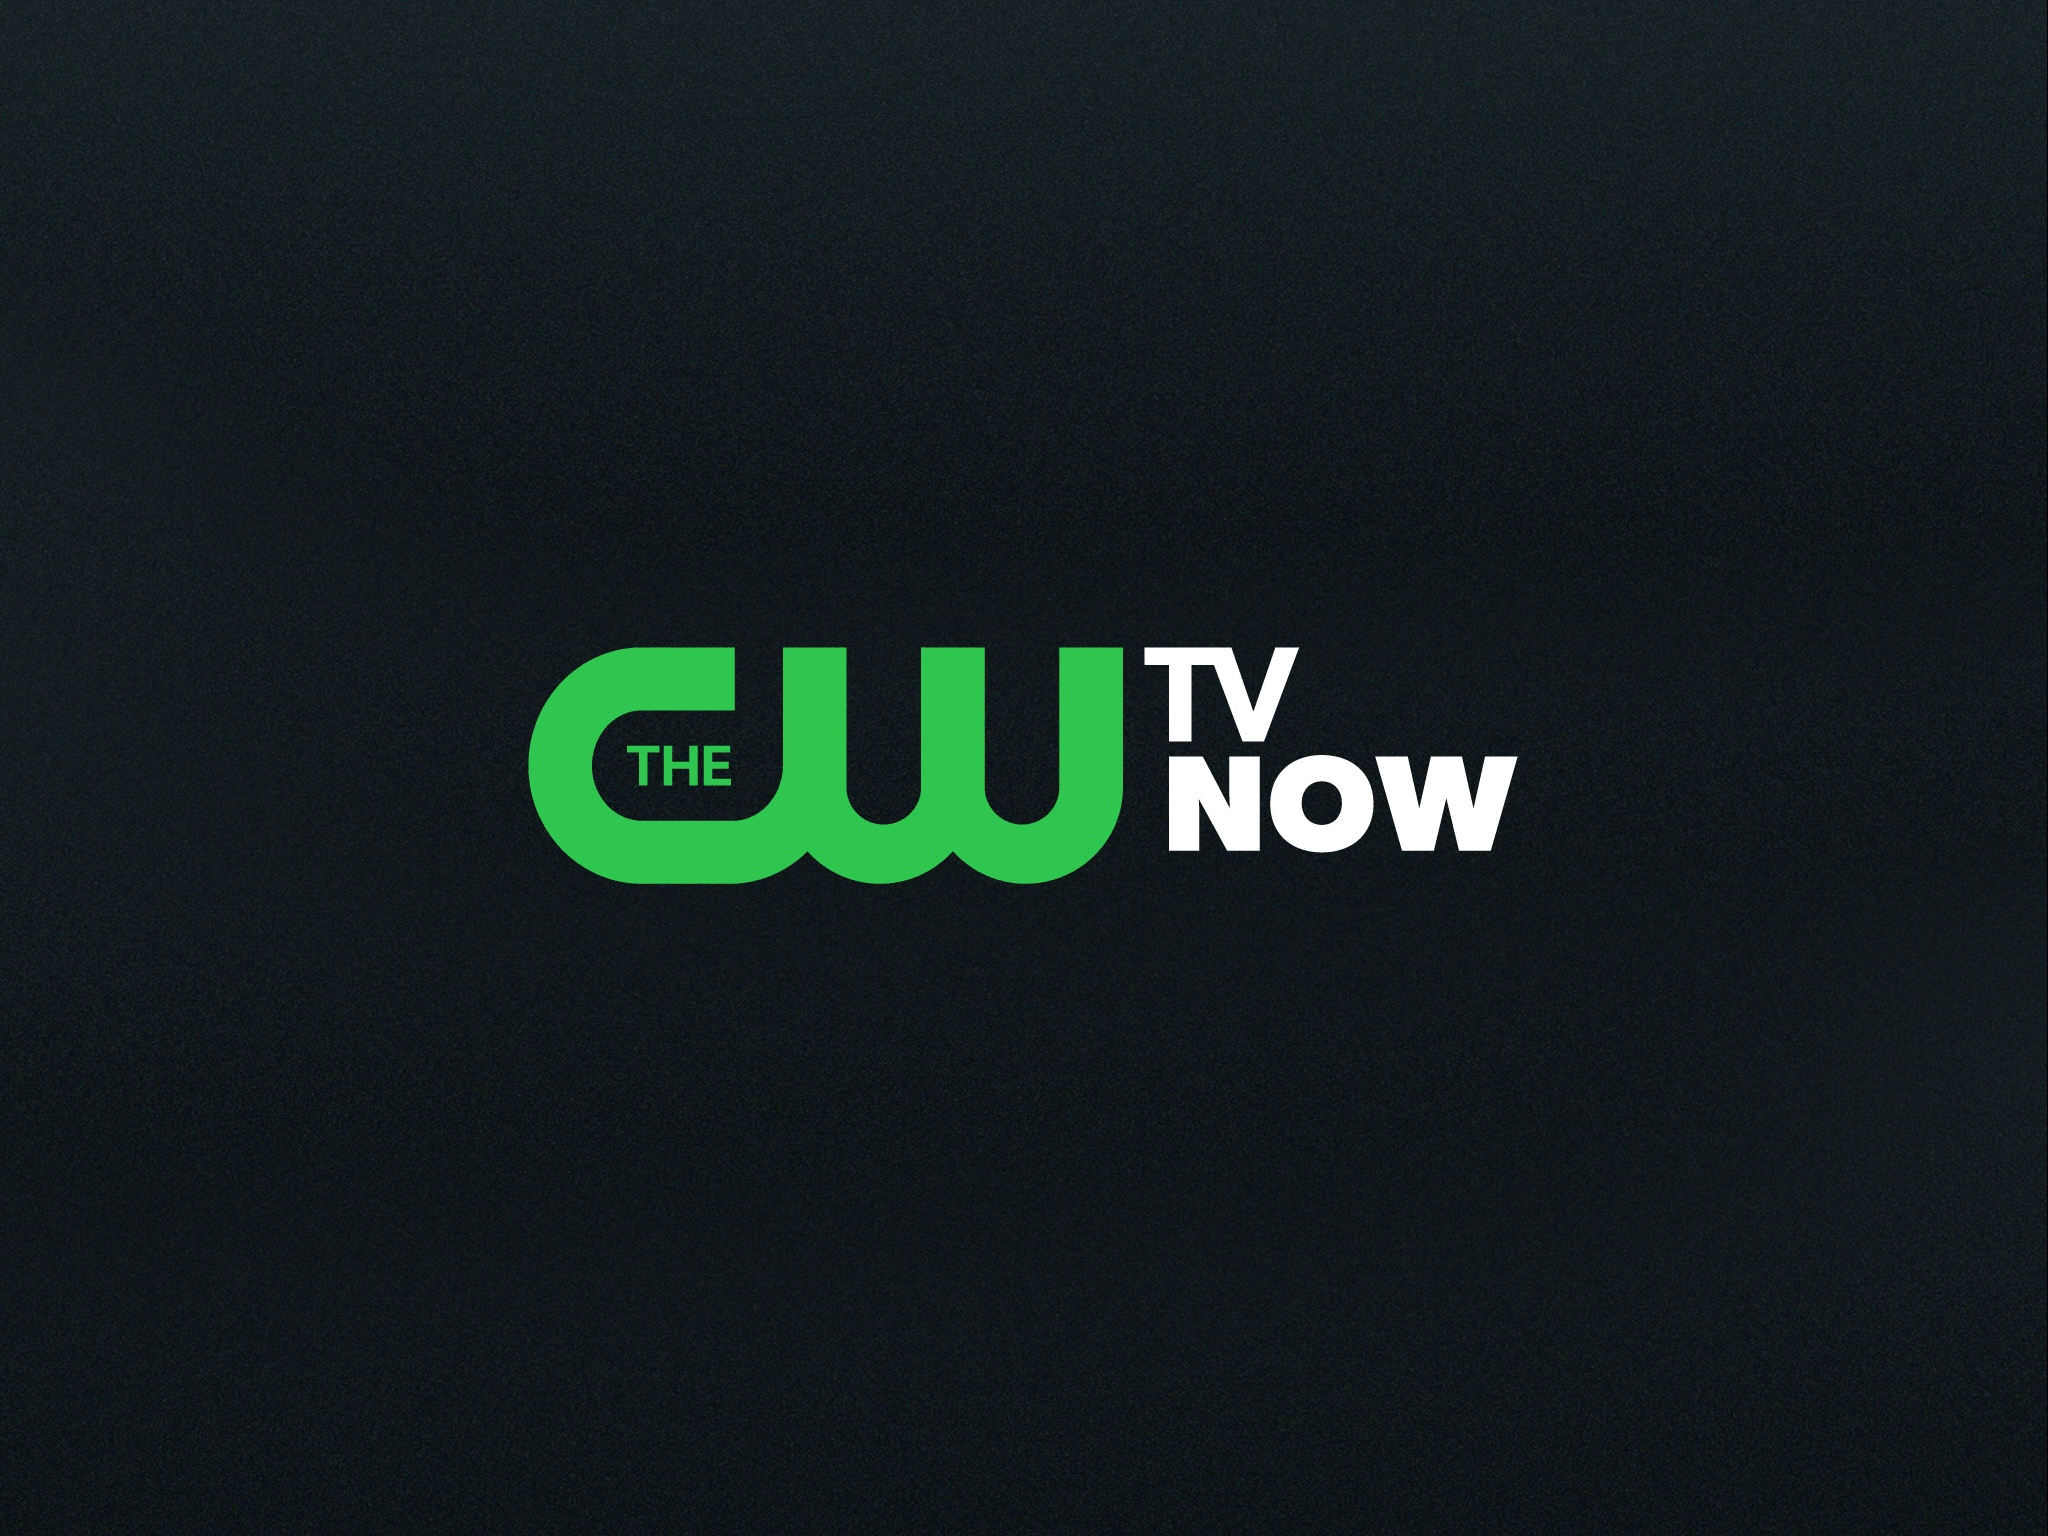 TV Shows Movies and Streaming Video